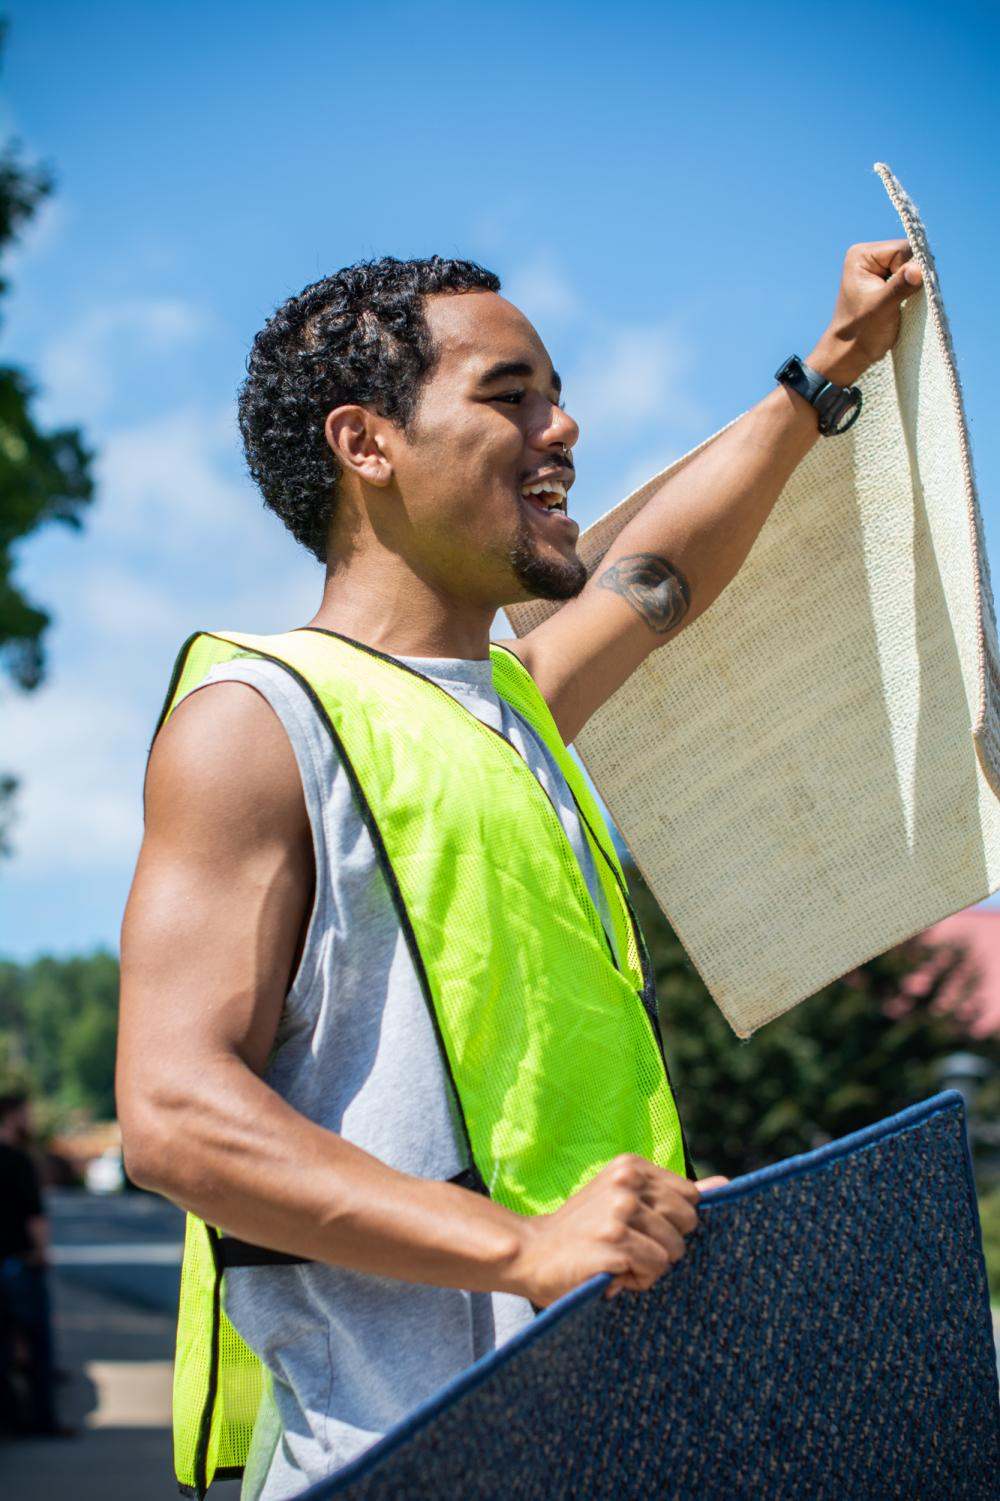 Student+affairs+and+administration+major+Rashaun+Robinson+is+a+first+year+graduate+student+as+well+as+a+volunteer+for+ACT.+Robinson+enthusiastically+helped+sell+rugs+for+the+Carpet+Pre-Sale+during+move-in+on+Friday.